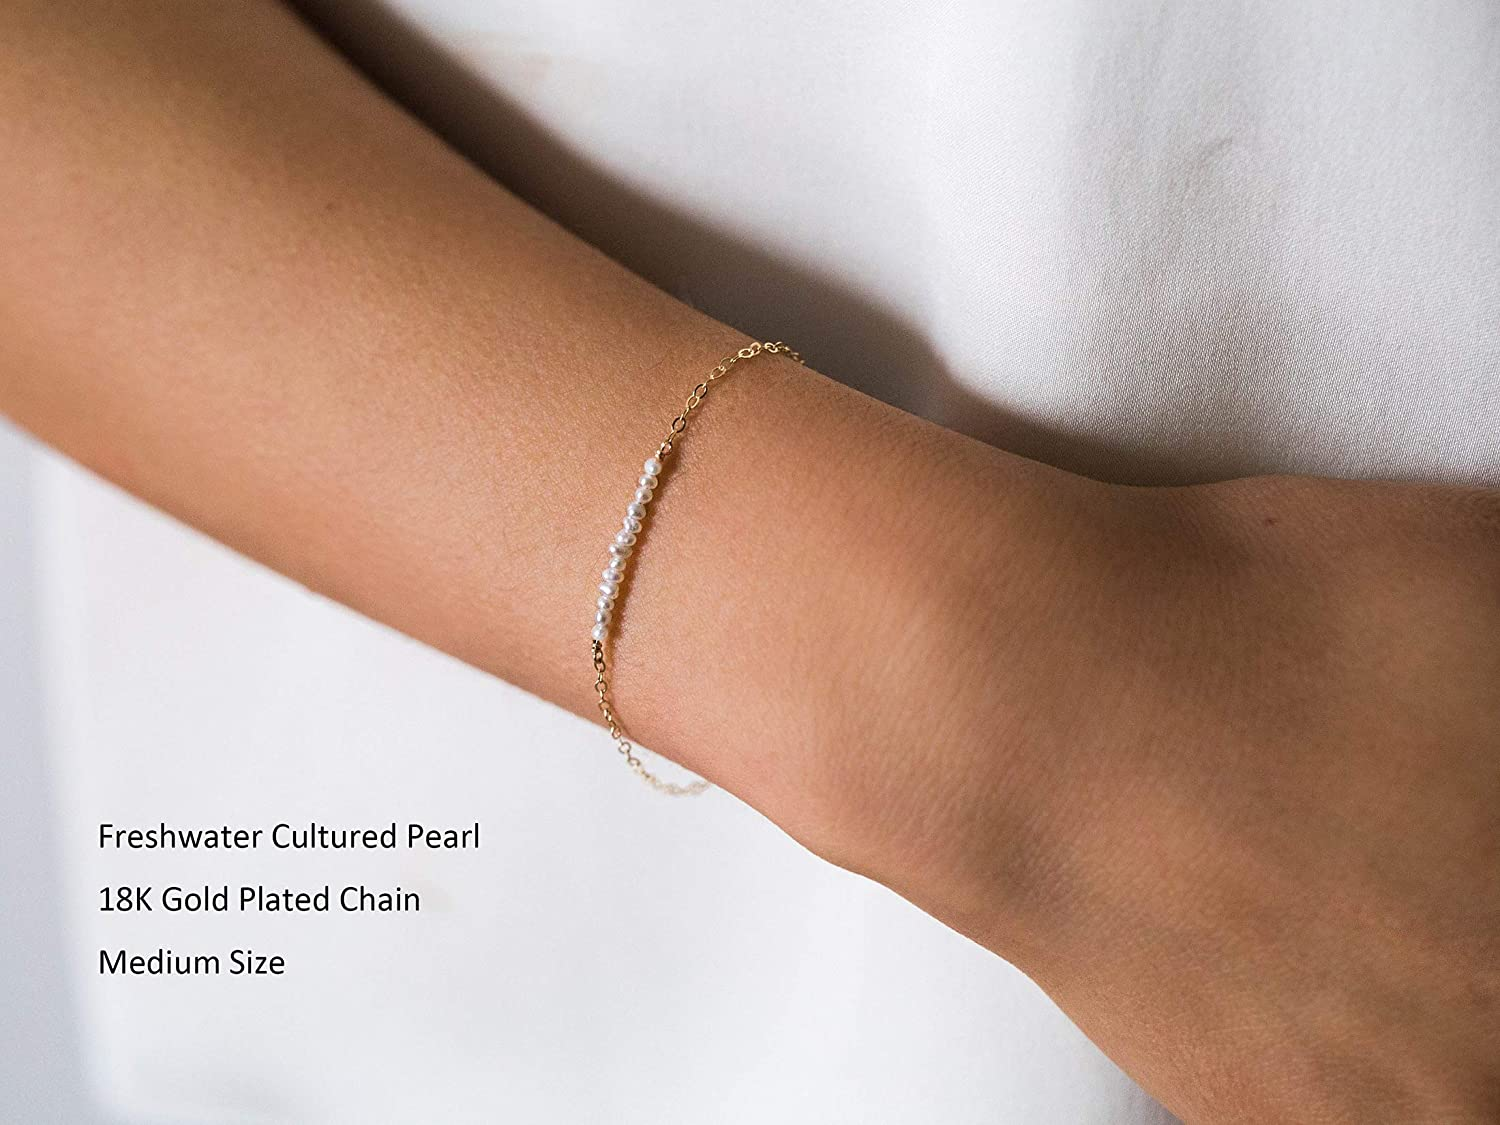 Single Chain Strand Bracelet Pearl Cable Chain Bracelet Pearl 14K Gold-filled Chain Bracelet Gold Gold Chain Bracelet Chain Bracelet